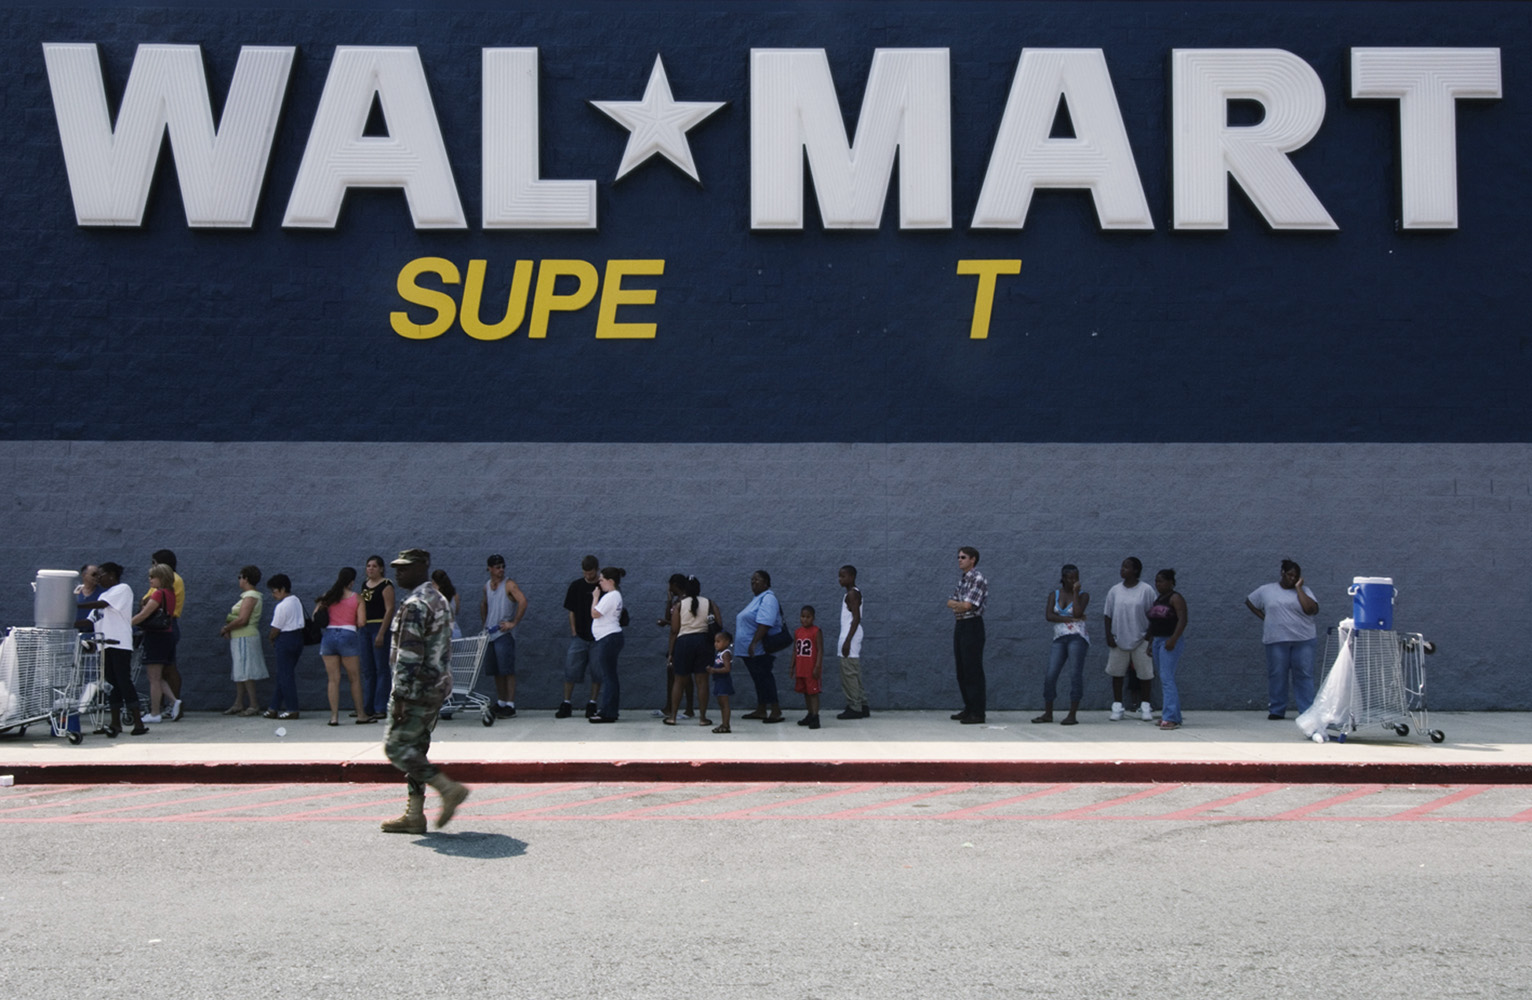 Location: Boutte, community near Orleans, Lousiana, US.A National Guard soldier patrols outside a Wal-Mart store as residents wait to purchase emergency supplies.  Police and soldiers with assault rifles have been guarding the store around the clock.